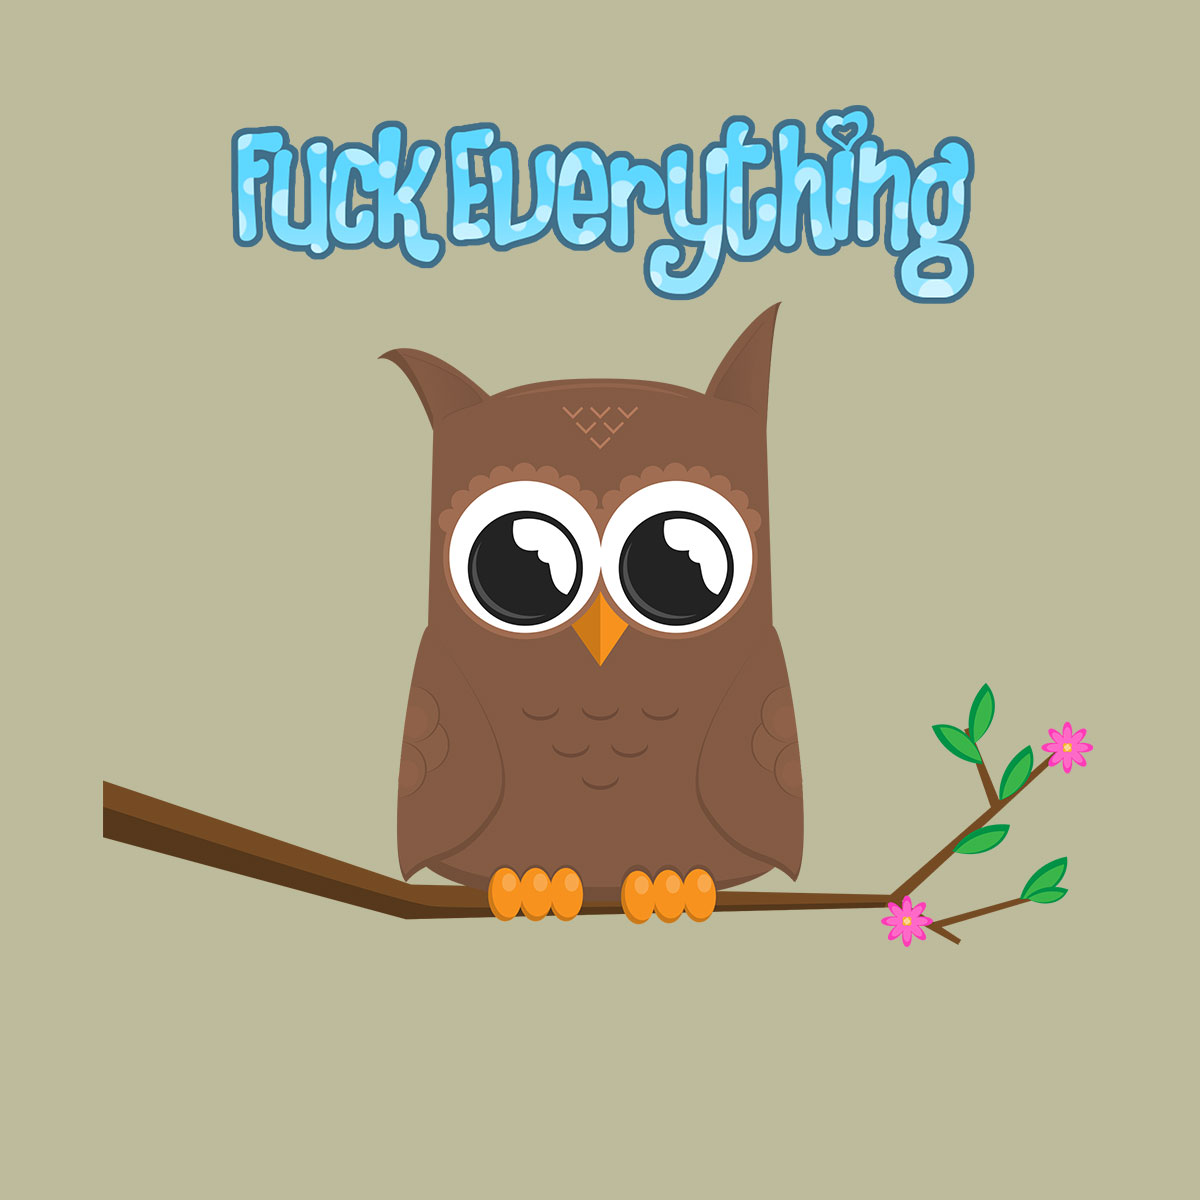 Exasperated Tiny Owl